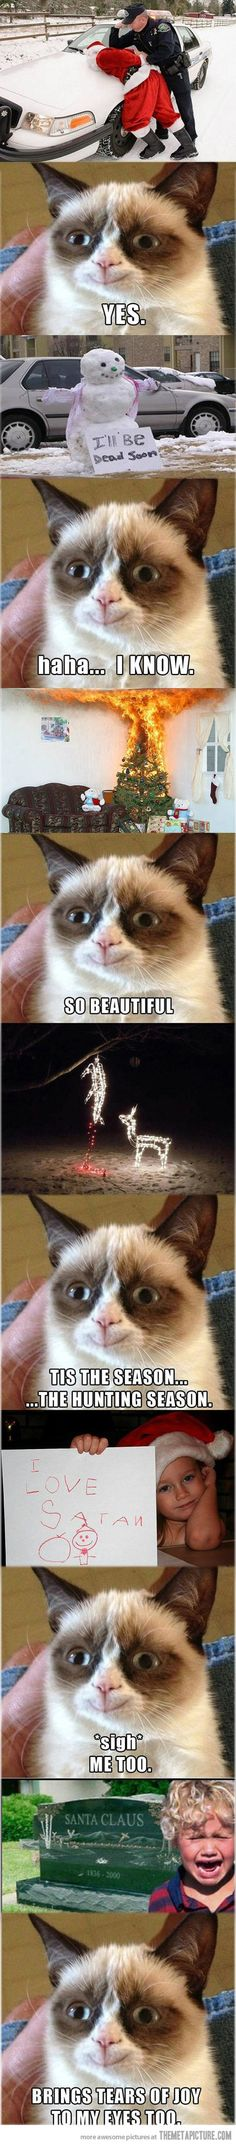 Life can be so beautiful… I almost pee'd my pants laughing at this!